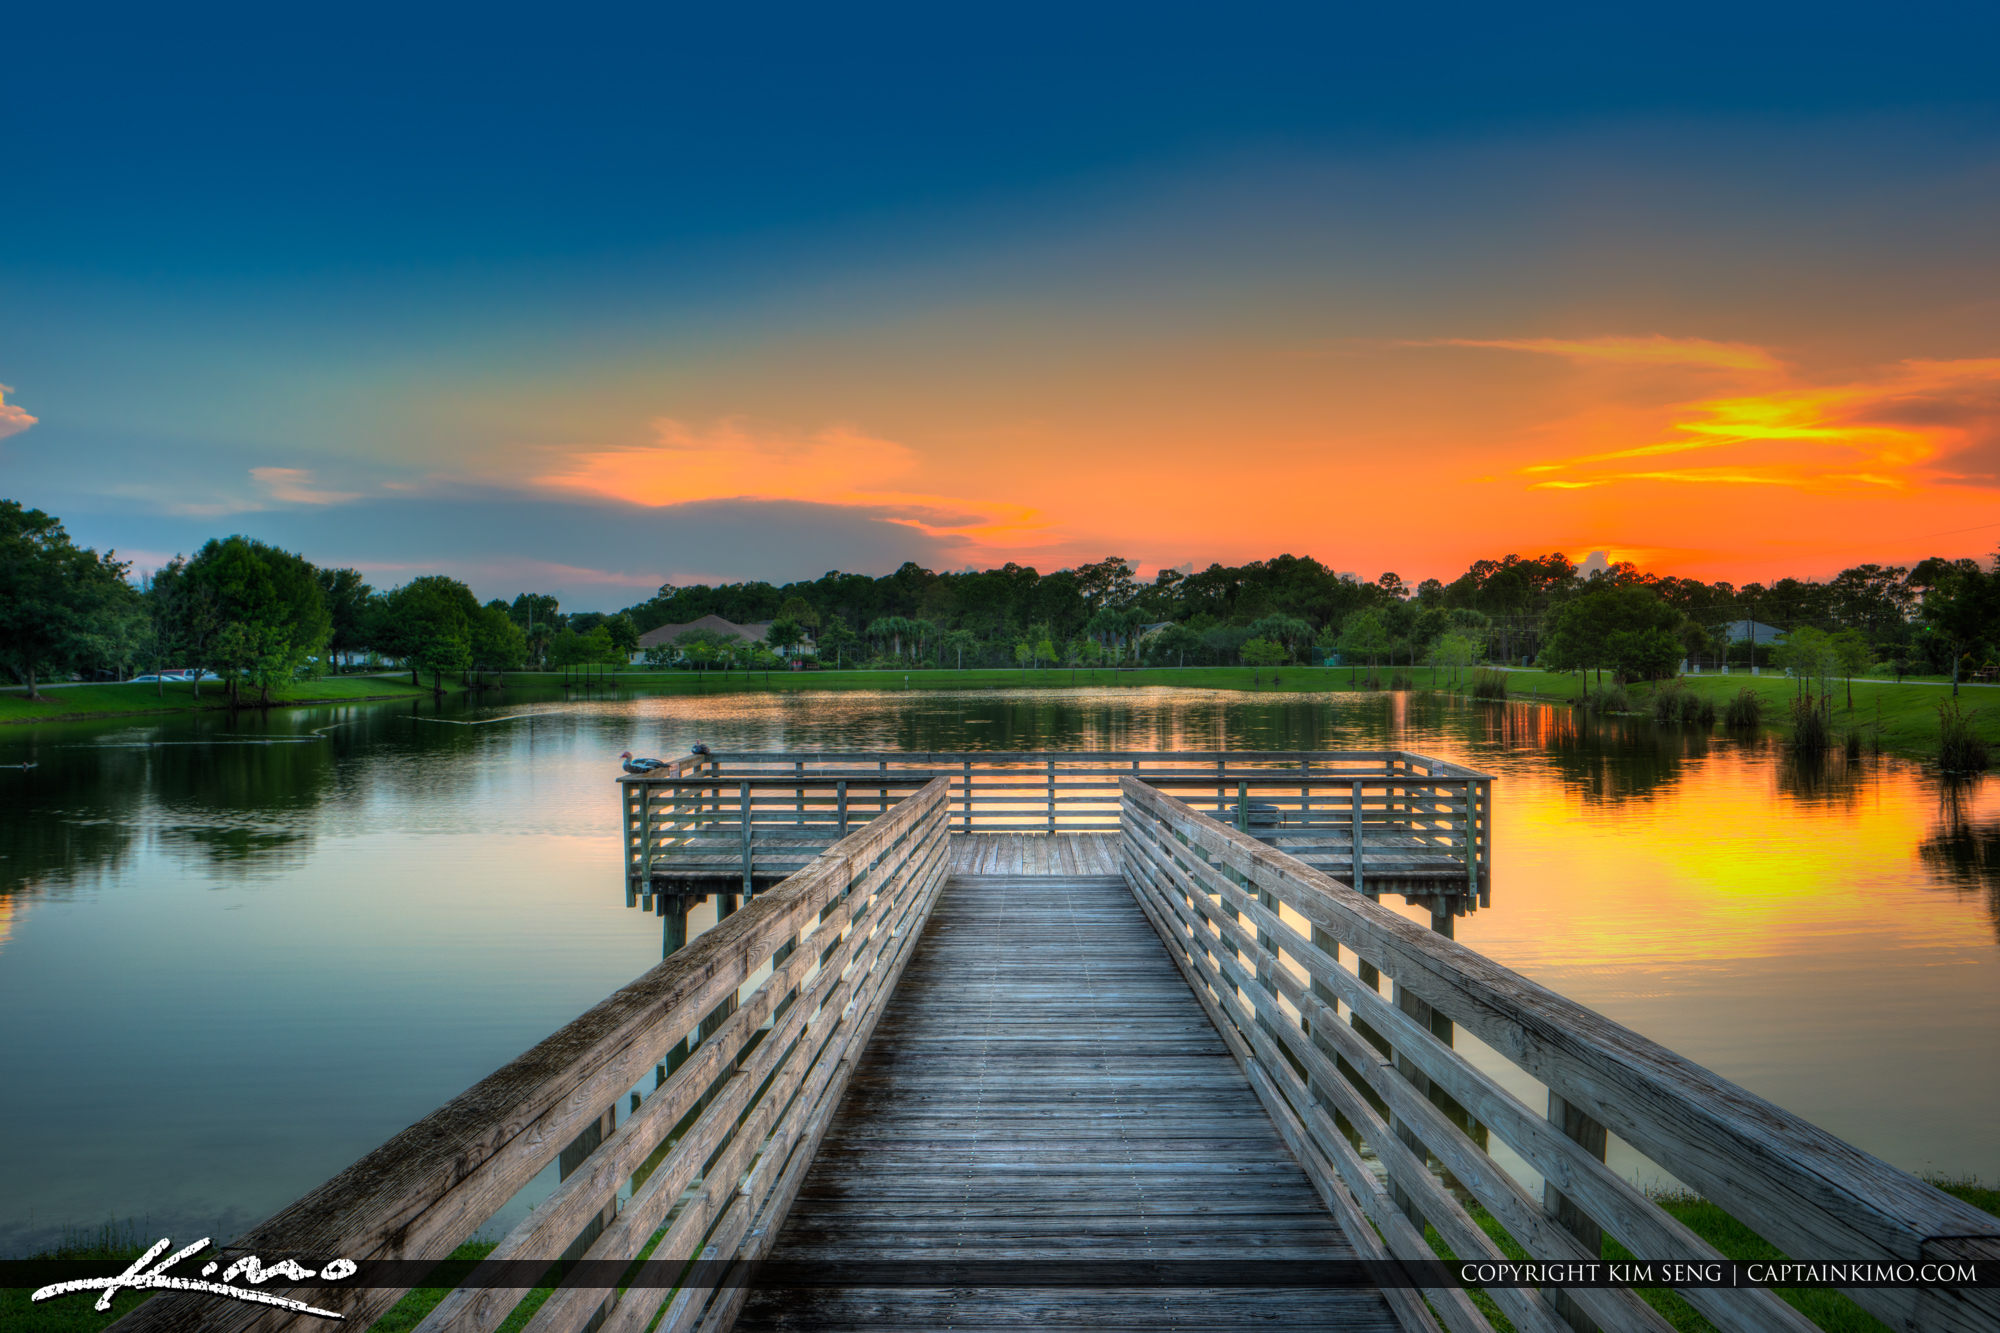 Sunset over Lake at the Acreage in Loxahatchee Florida